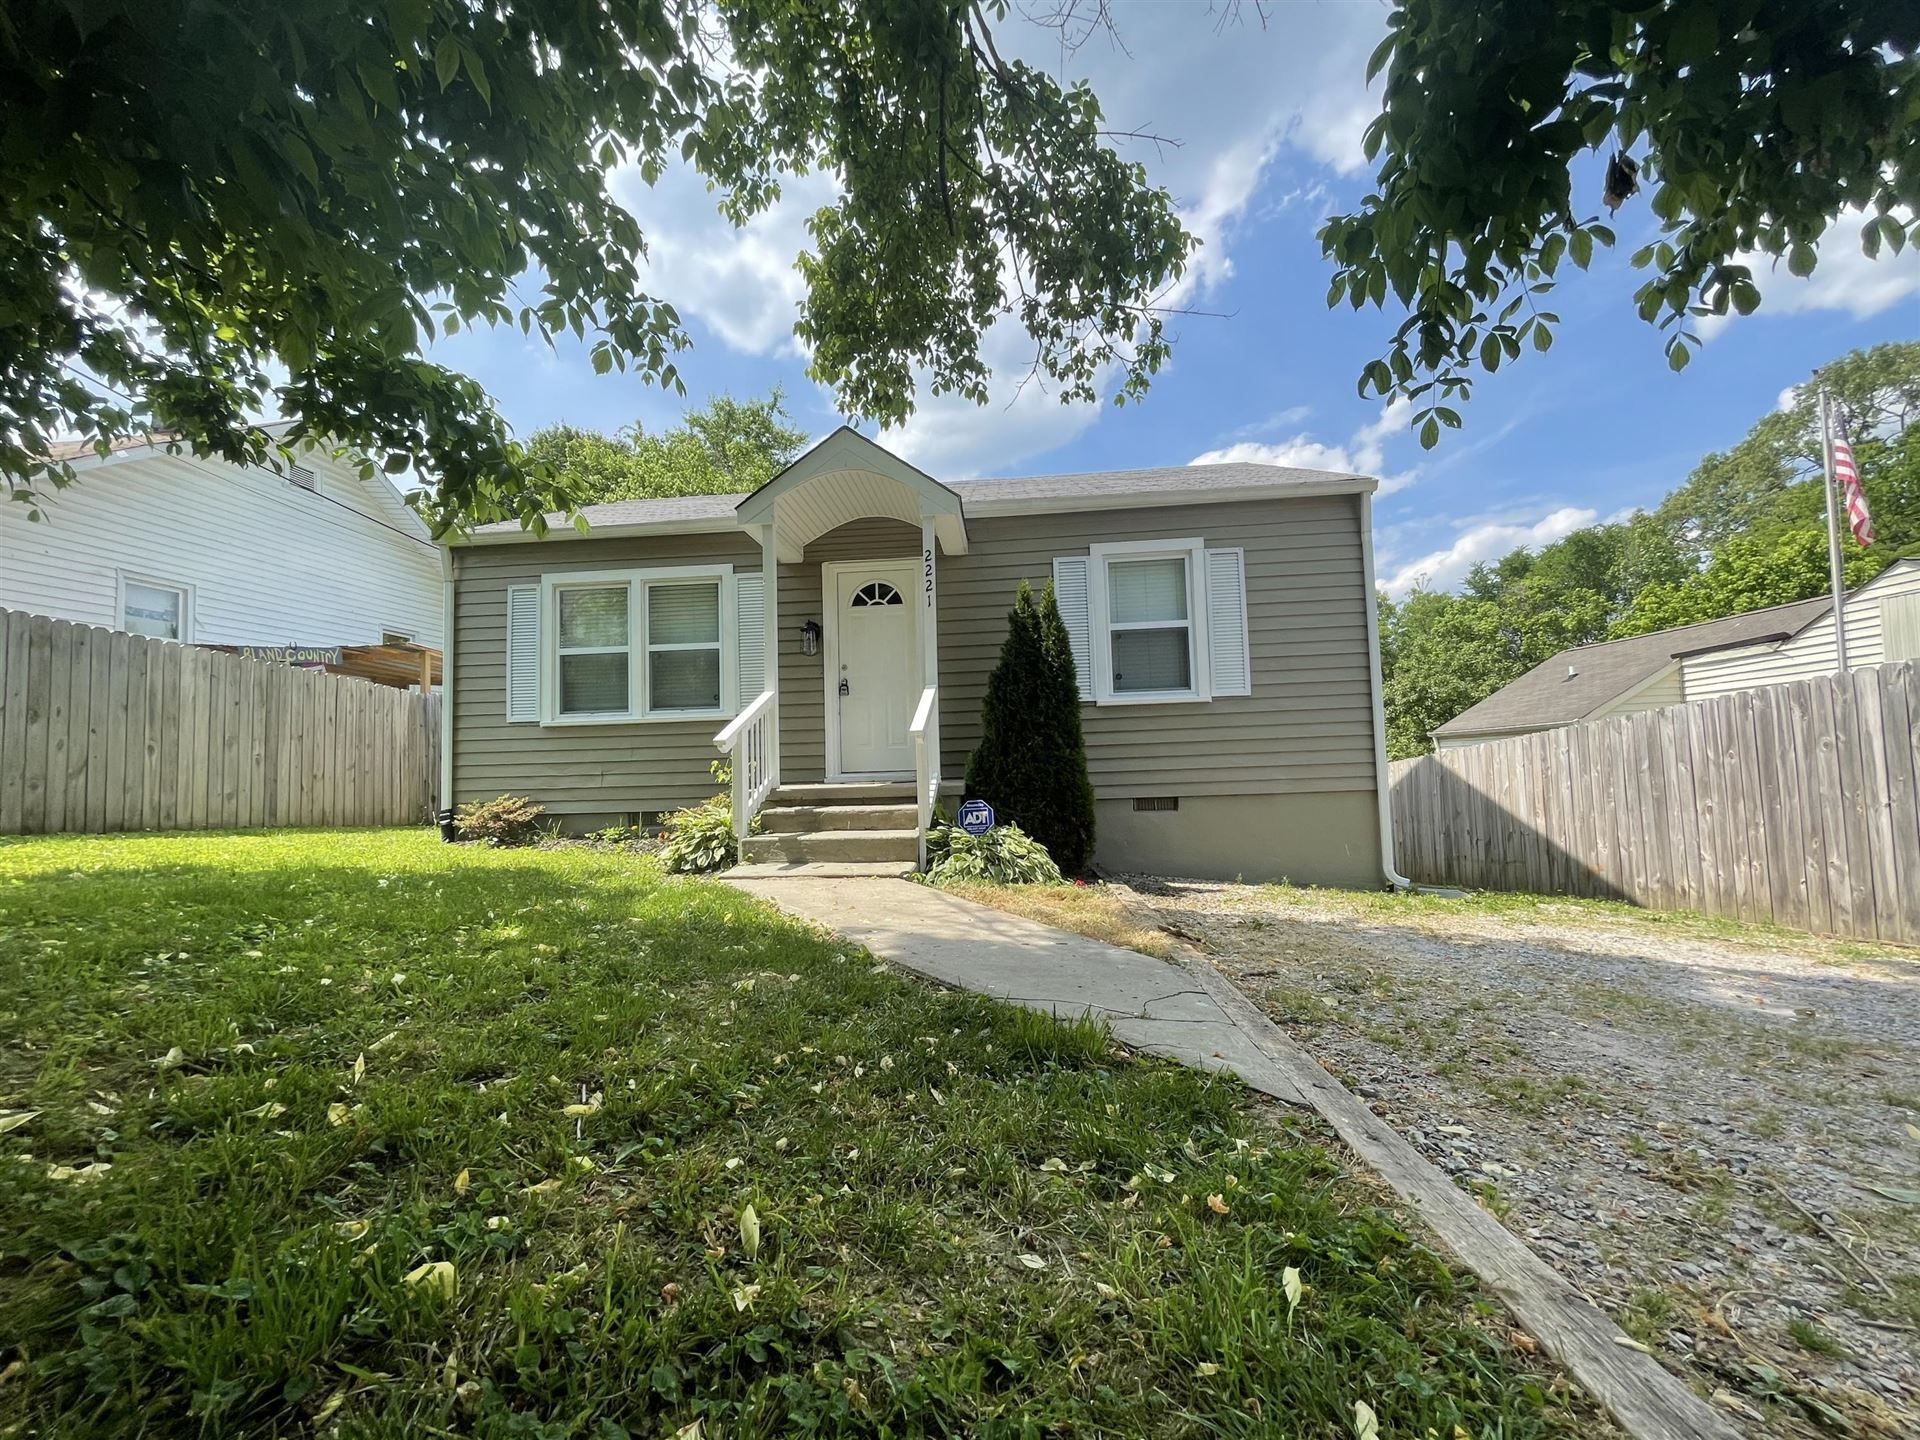 2221 Aster Rd, Knoxville, TN 37918 - MLS#: 1154141